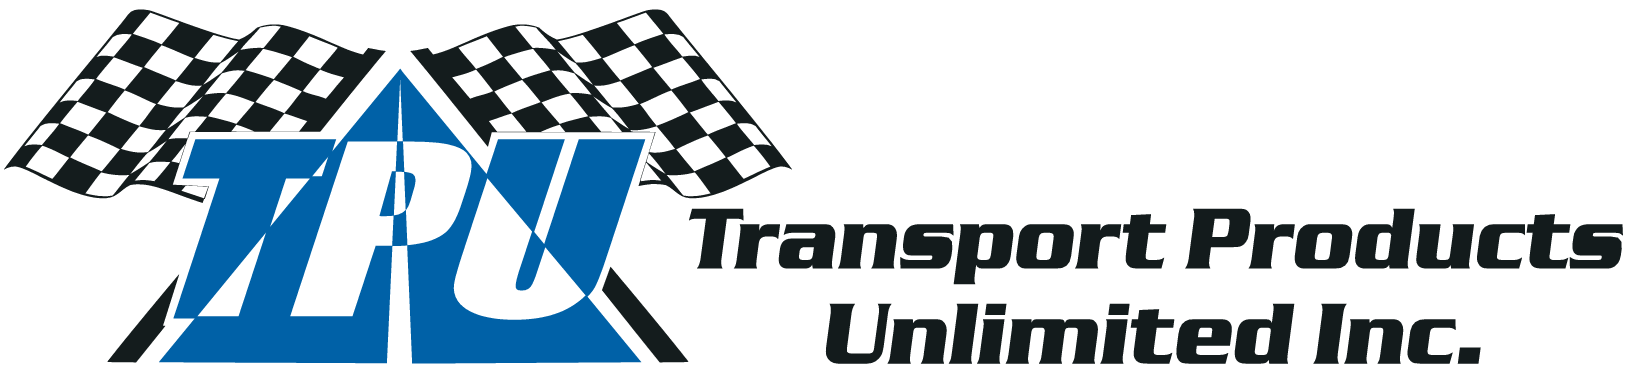 Transport Products Unlimited Inc.